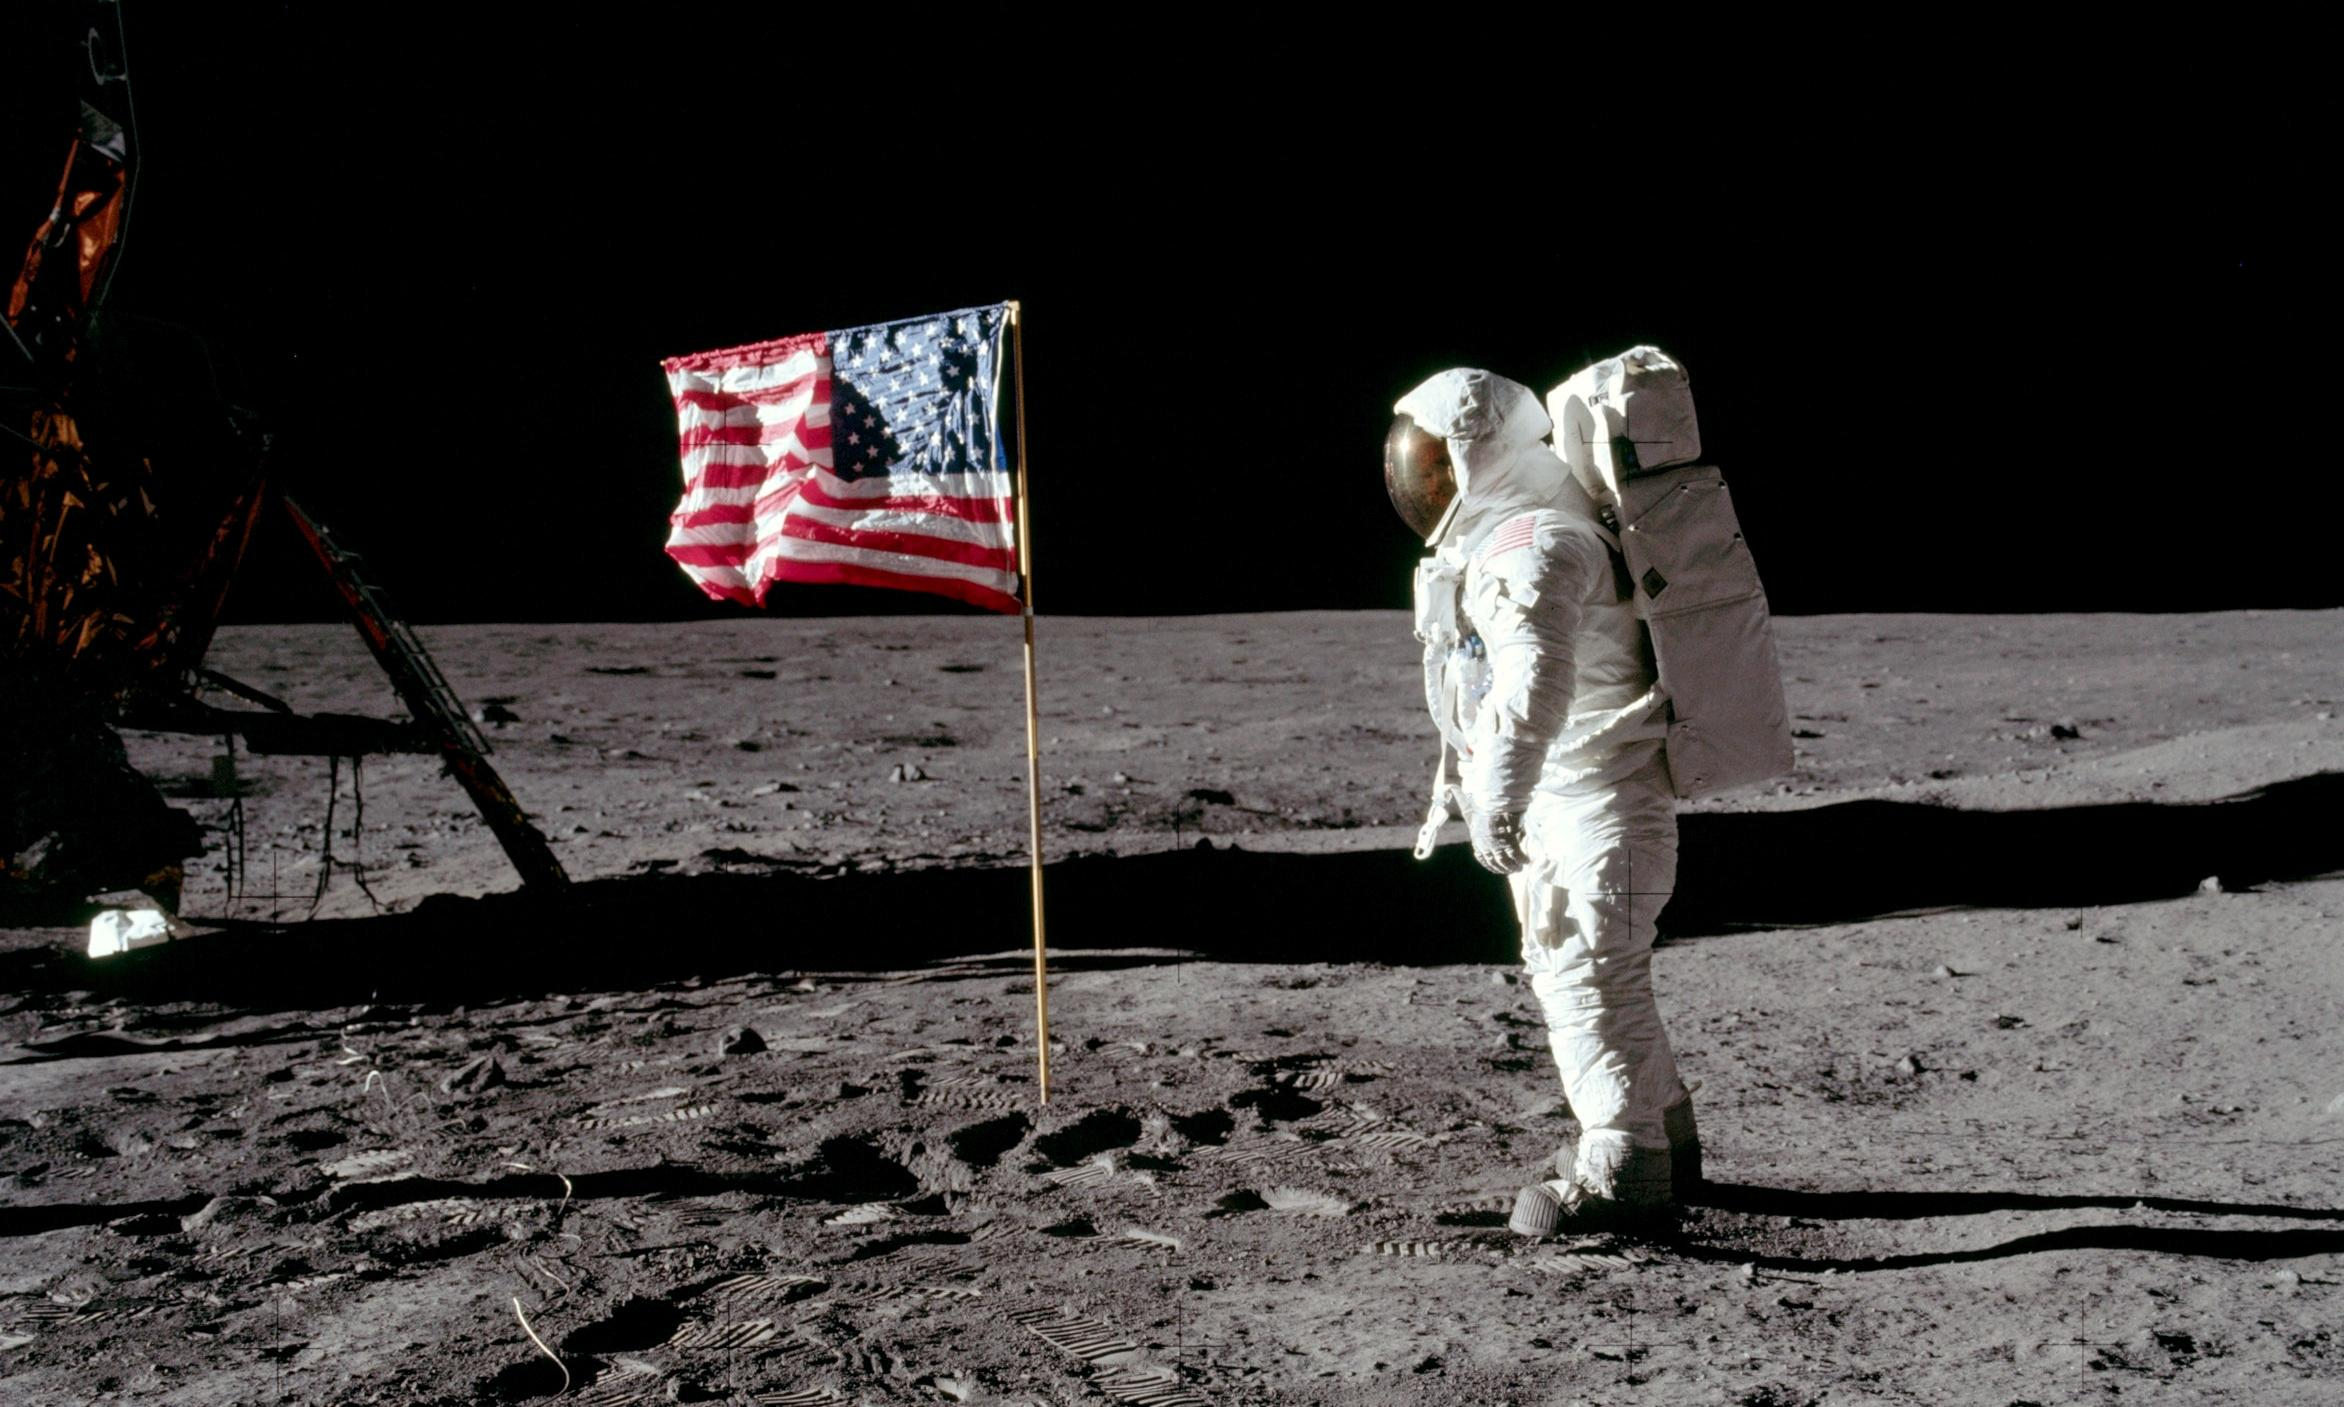 The Apollo 11 moon landing was a distraction from America's problems